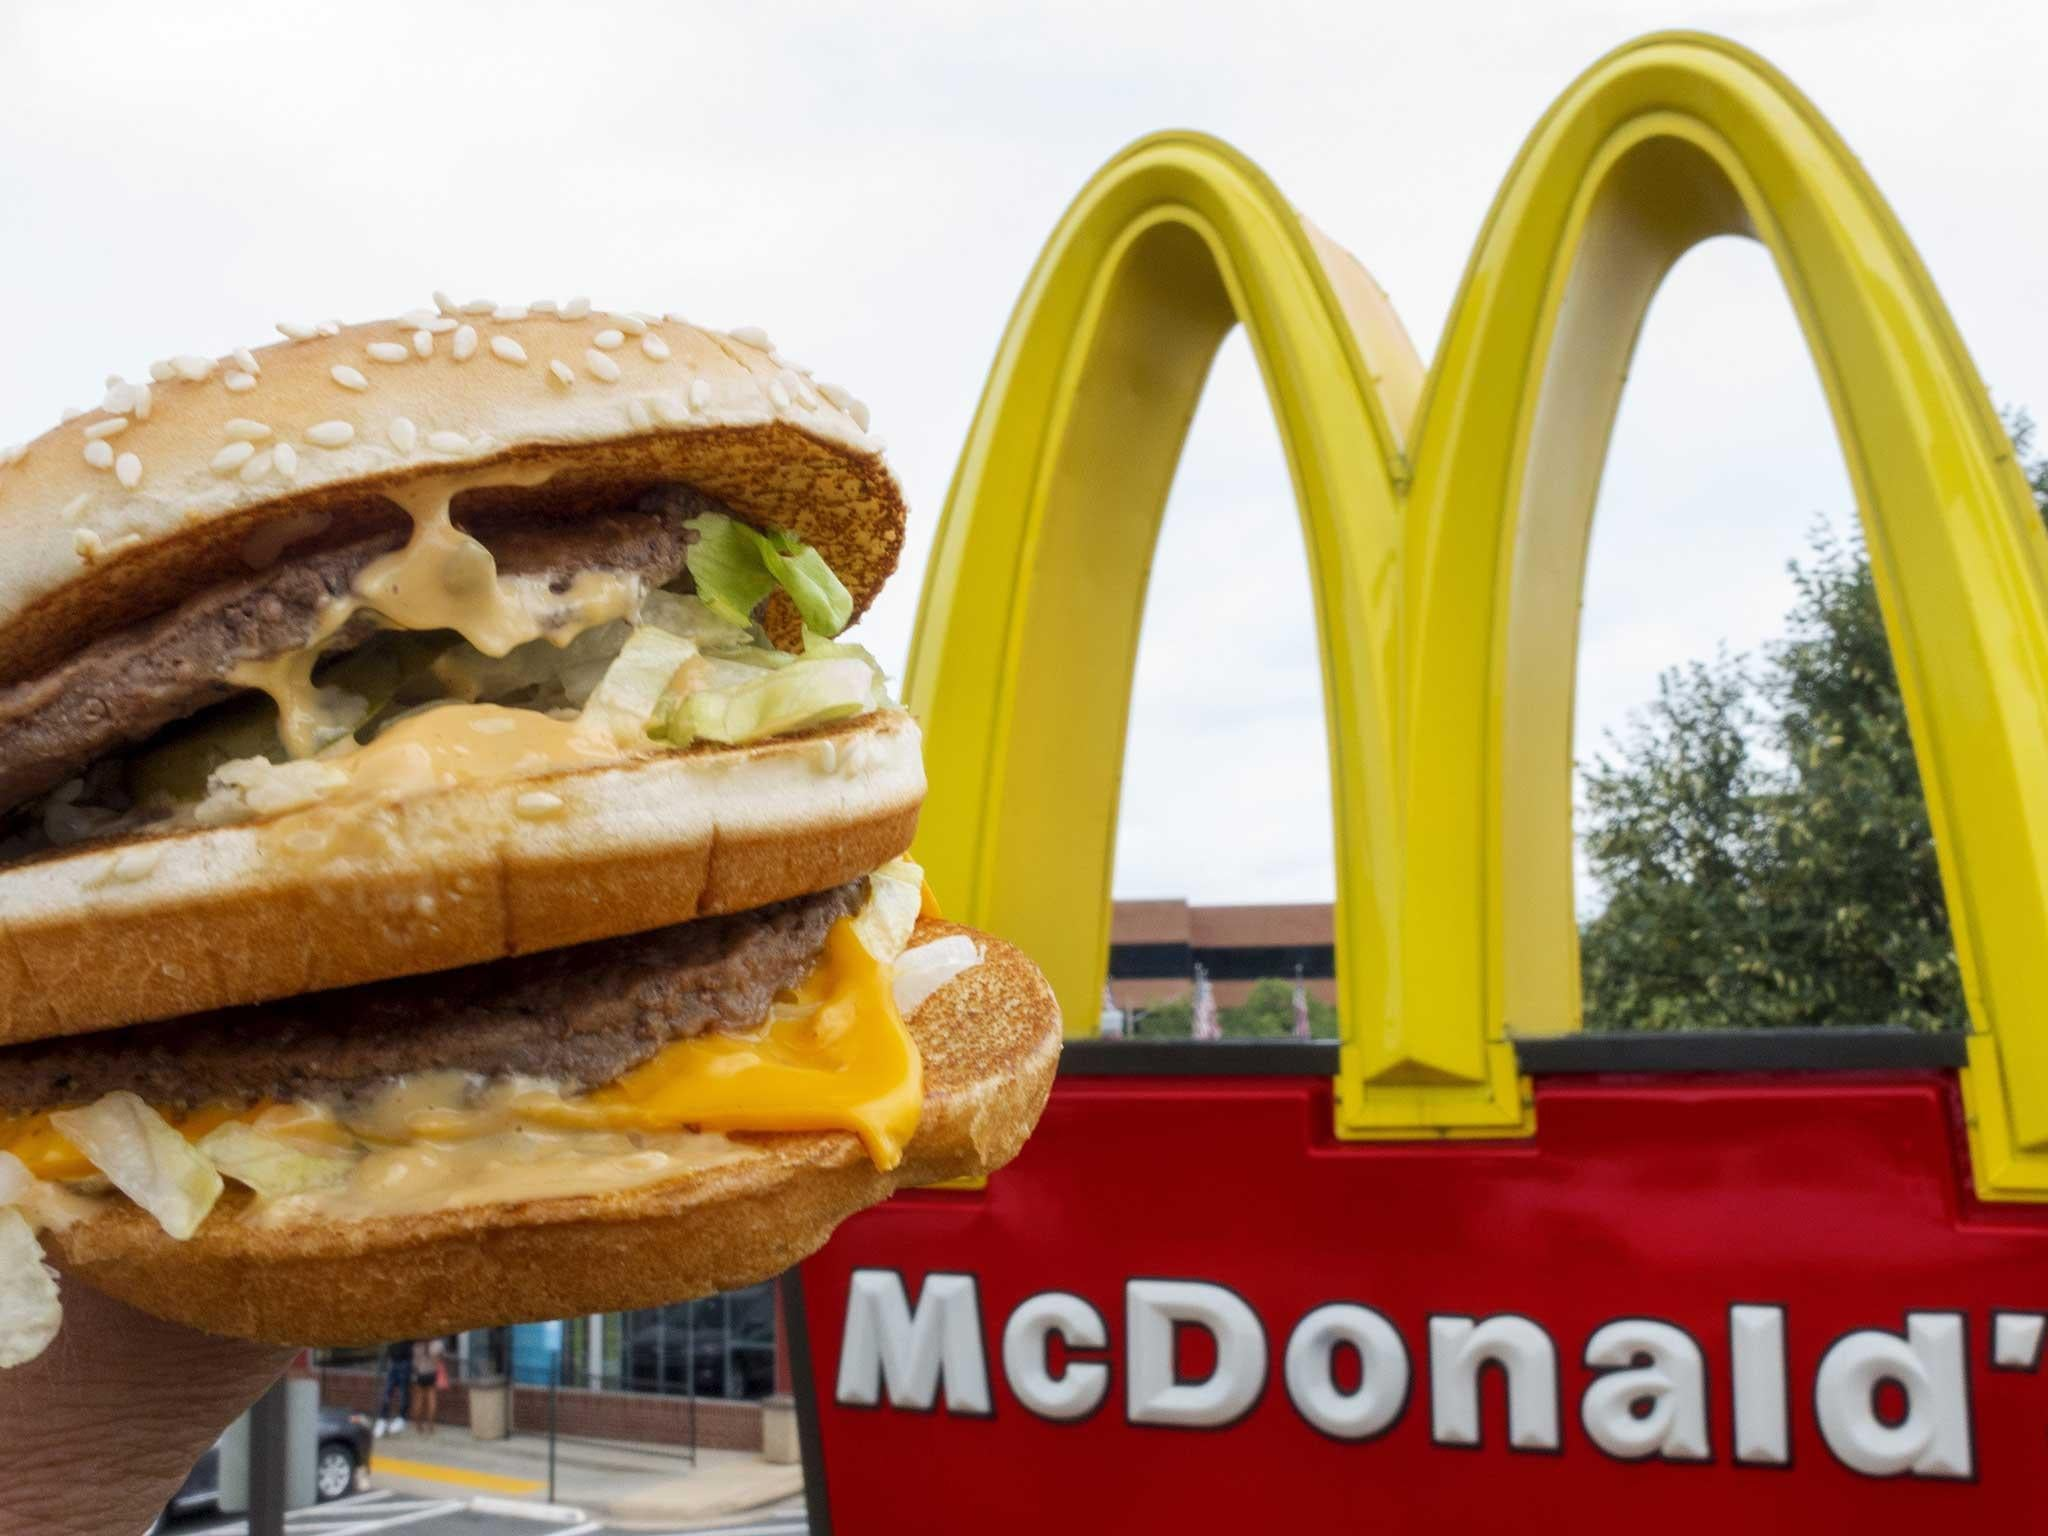 McDonalds Tries Using Fresh Beef In Its Quarter Pounder Burgers As Part Of Major Overhaul